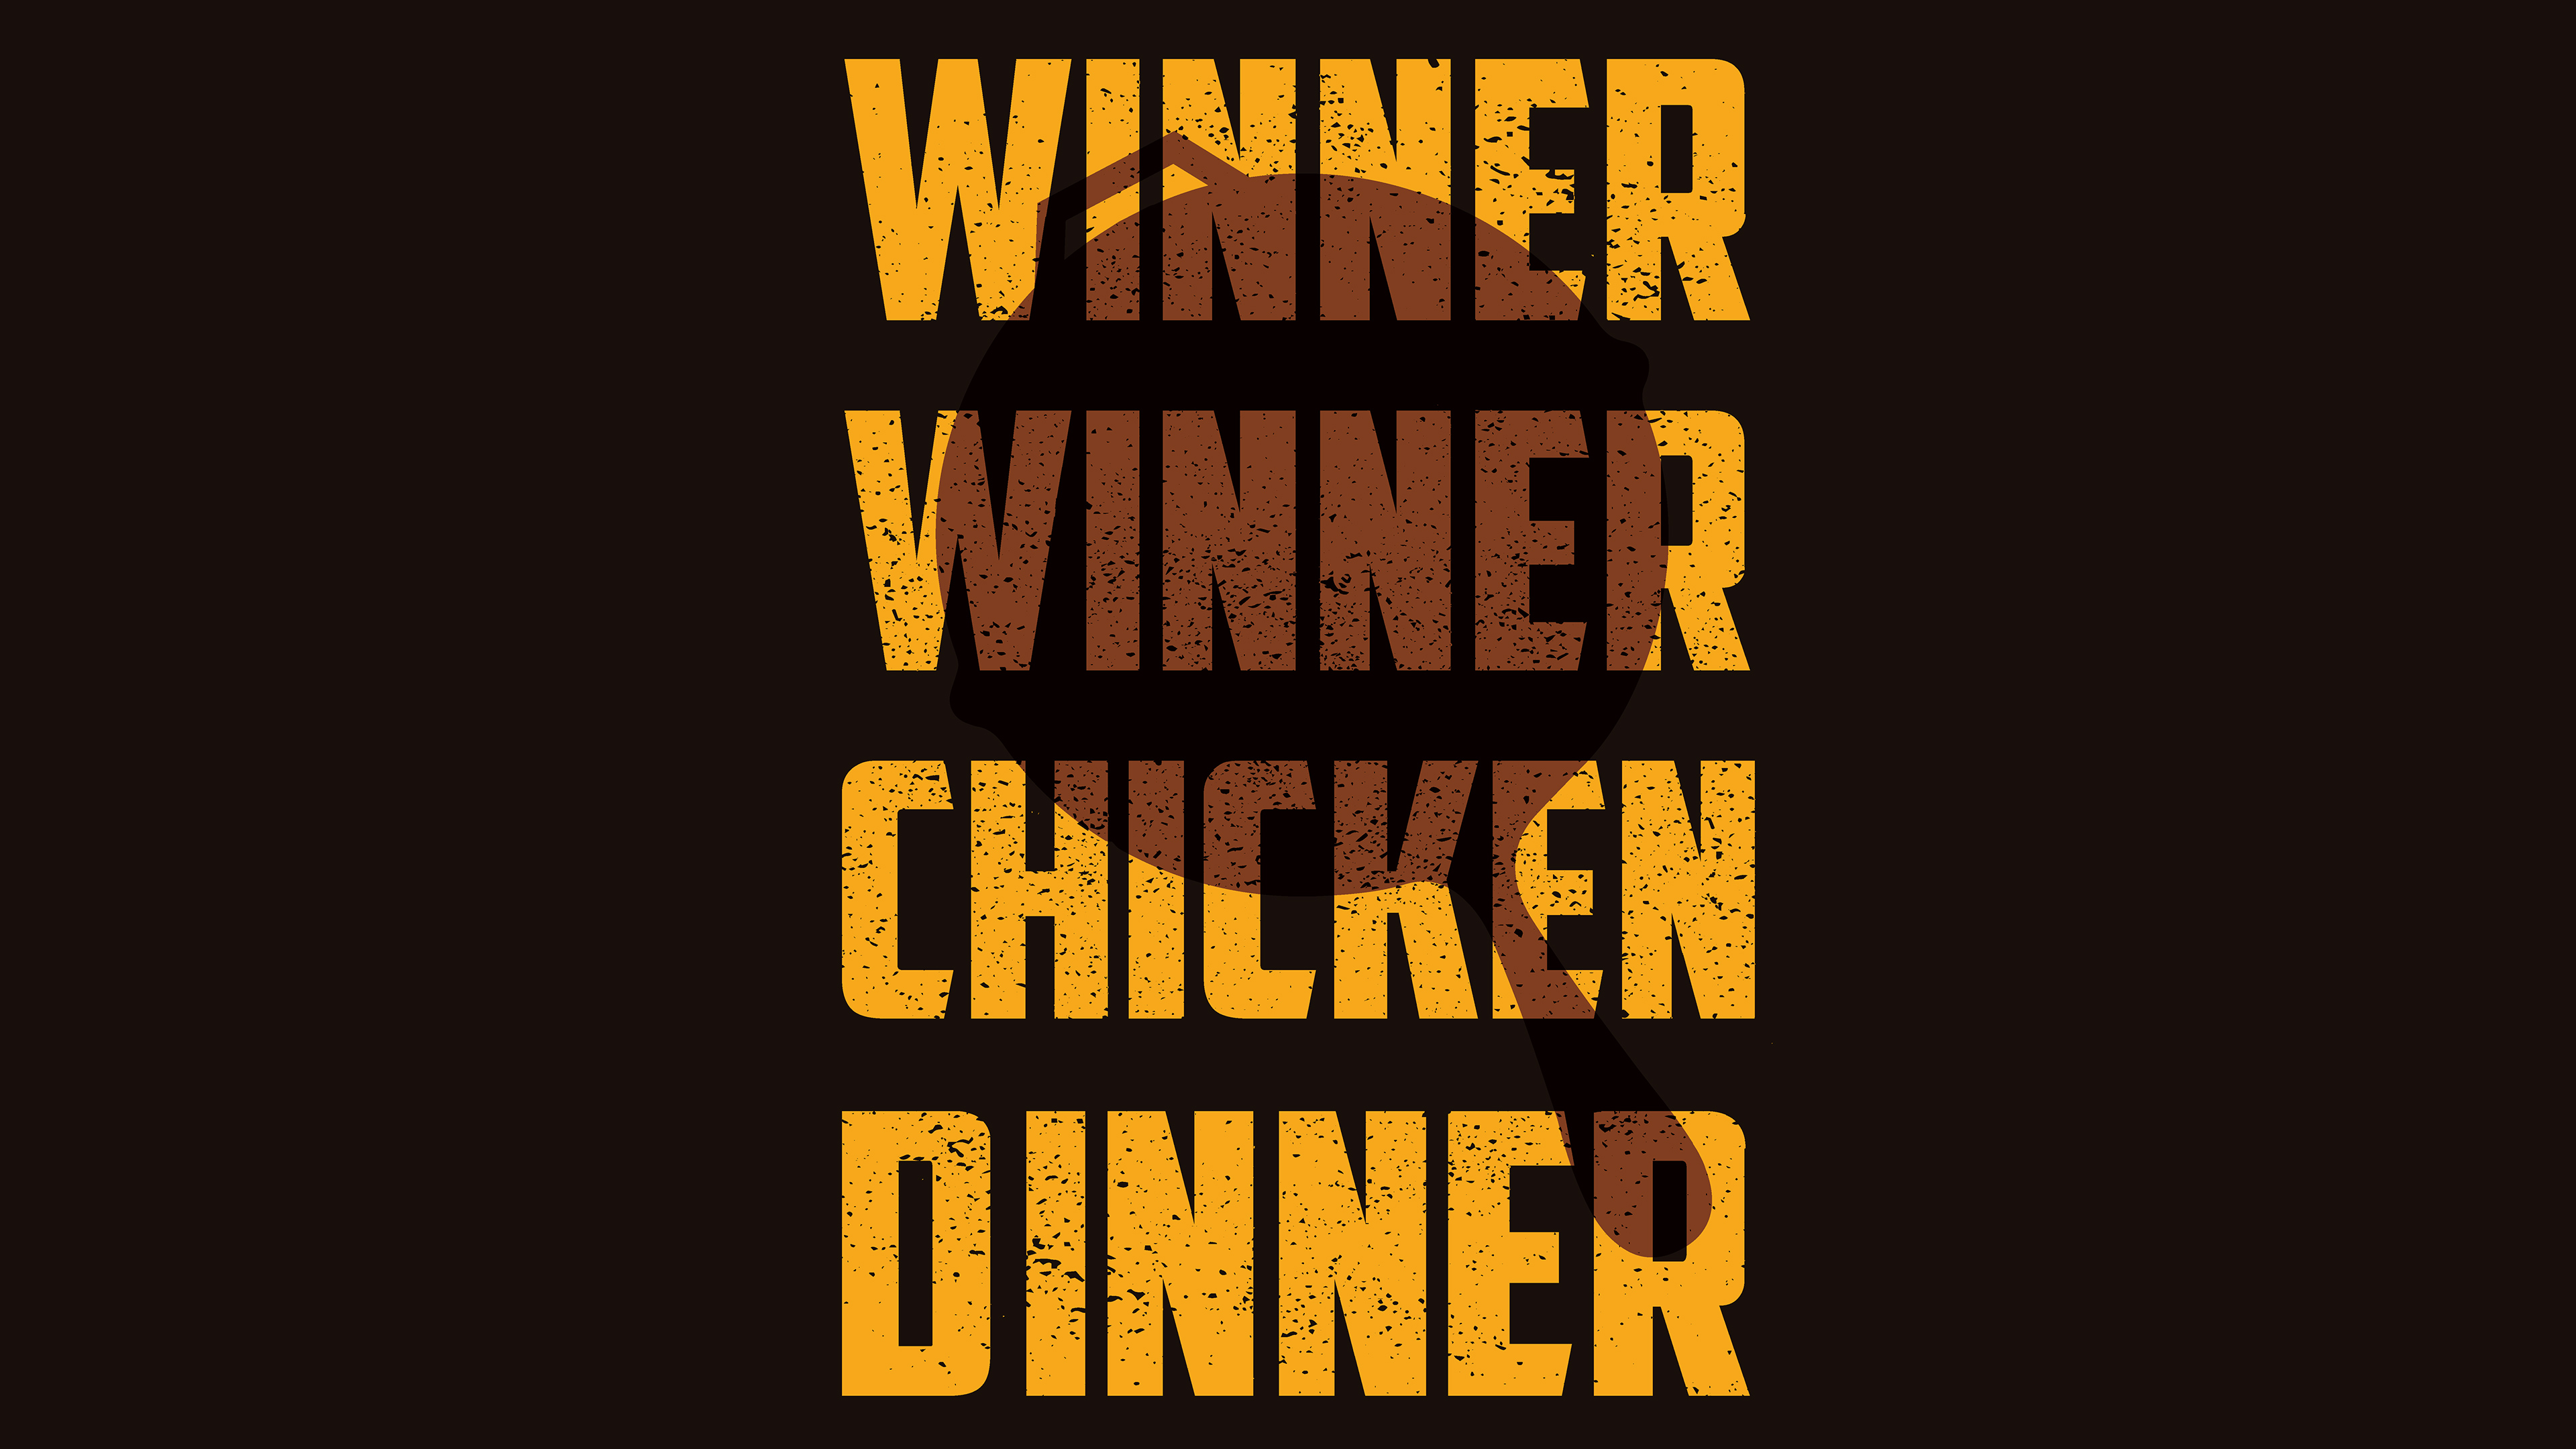 winner winner chicken dinner 4k 1547319329 - Winner Winner Chicken Dinner 4k - typography wallpapers, pubg wallpapers, playerunknowns battlegrounds wallpapers, hd-wallpapers, games wallpapers, 4k-wallpapers, 2018 games wallpapers